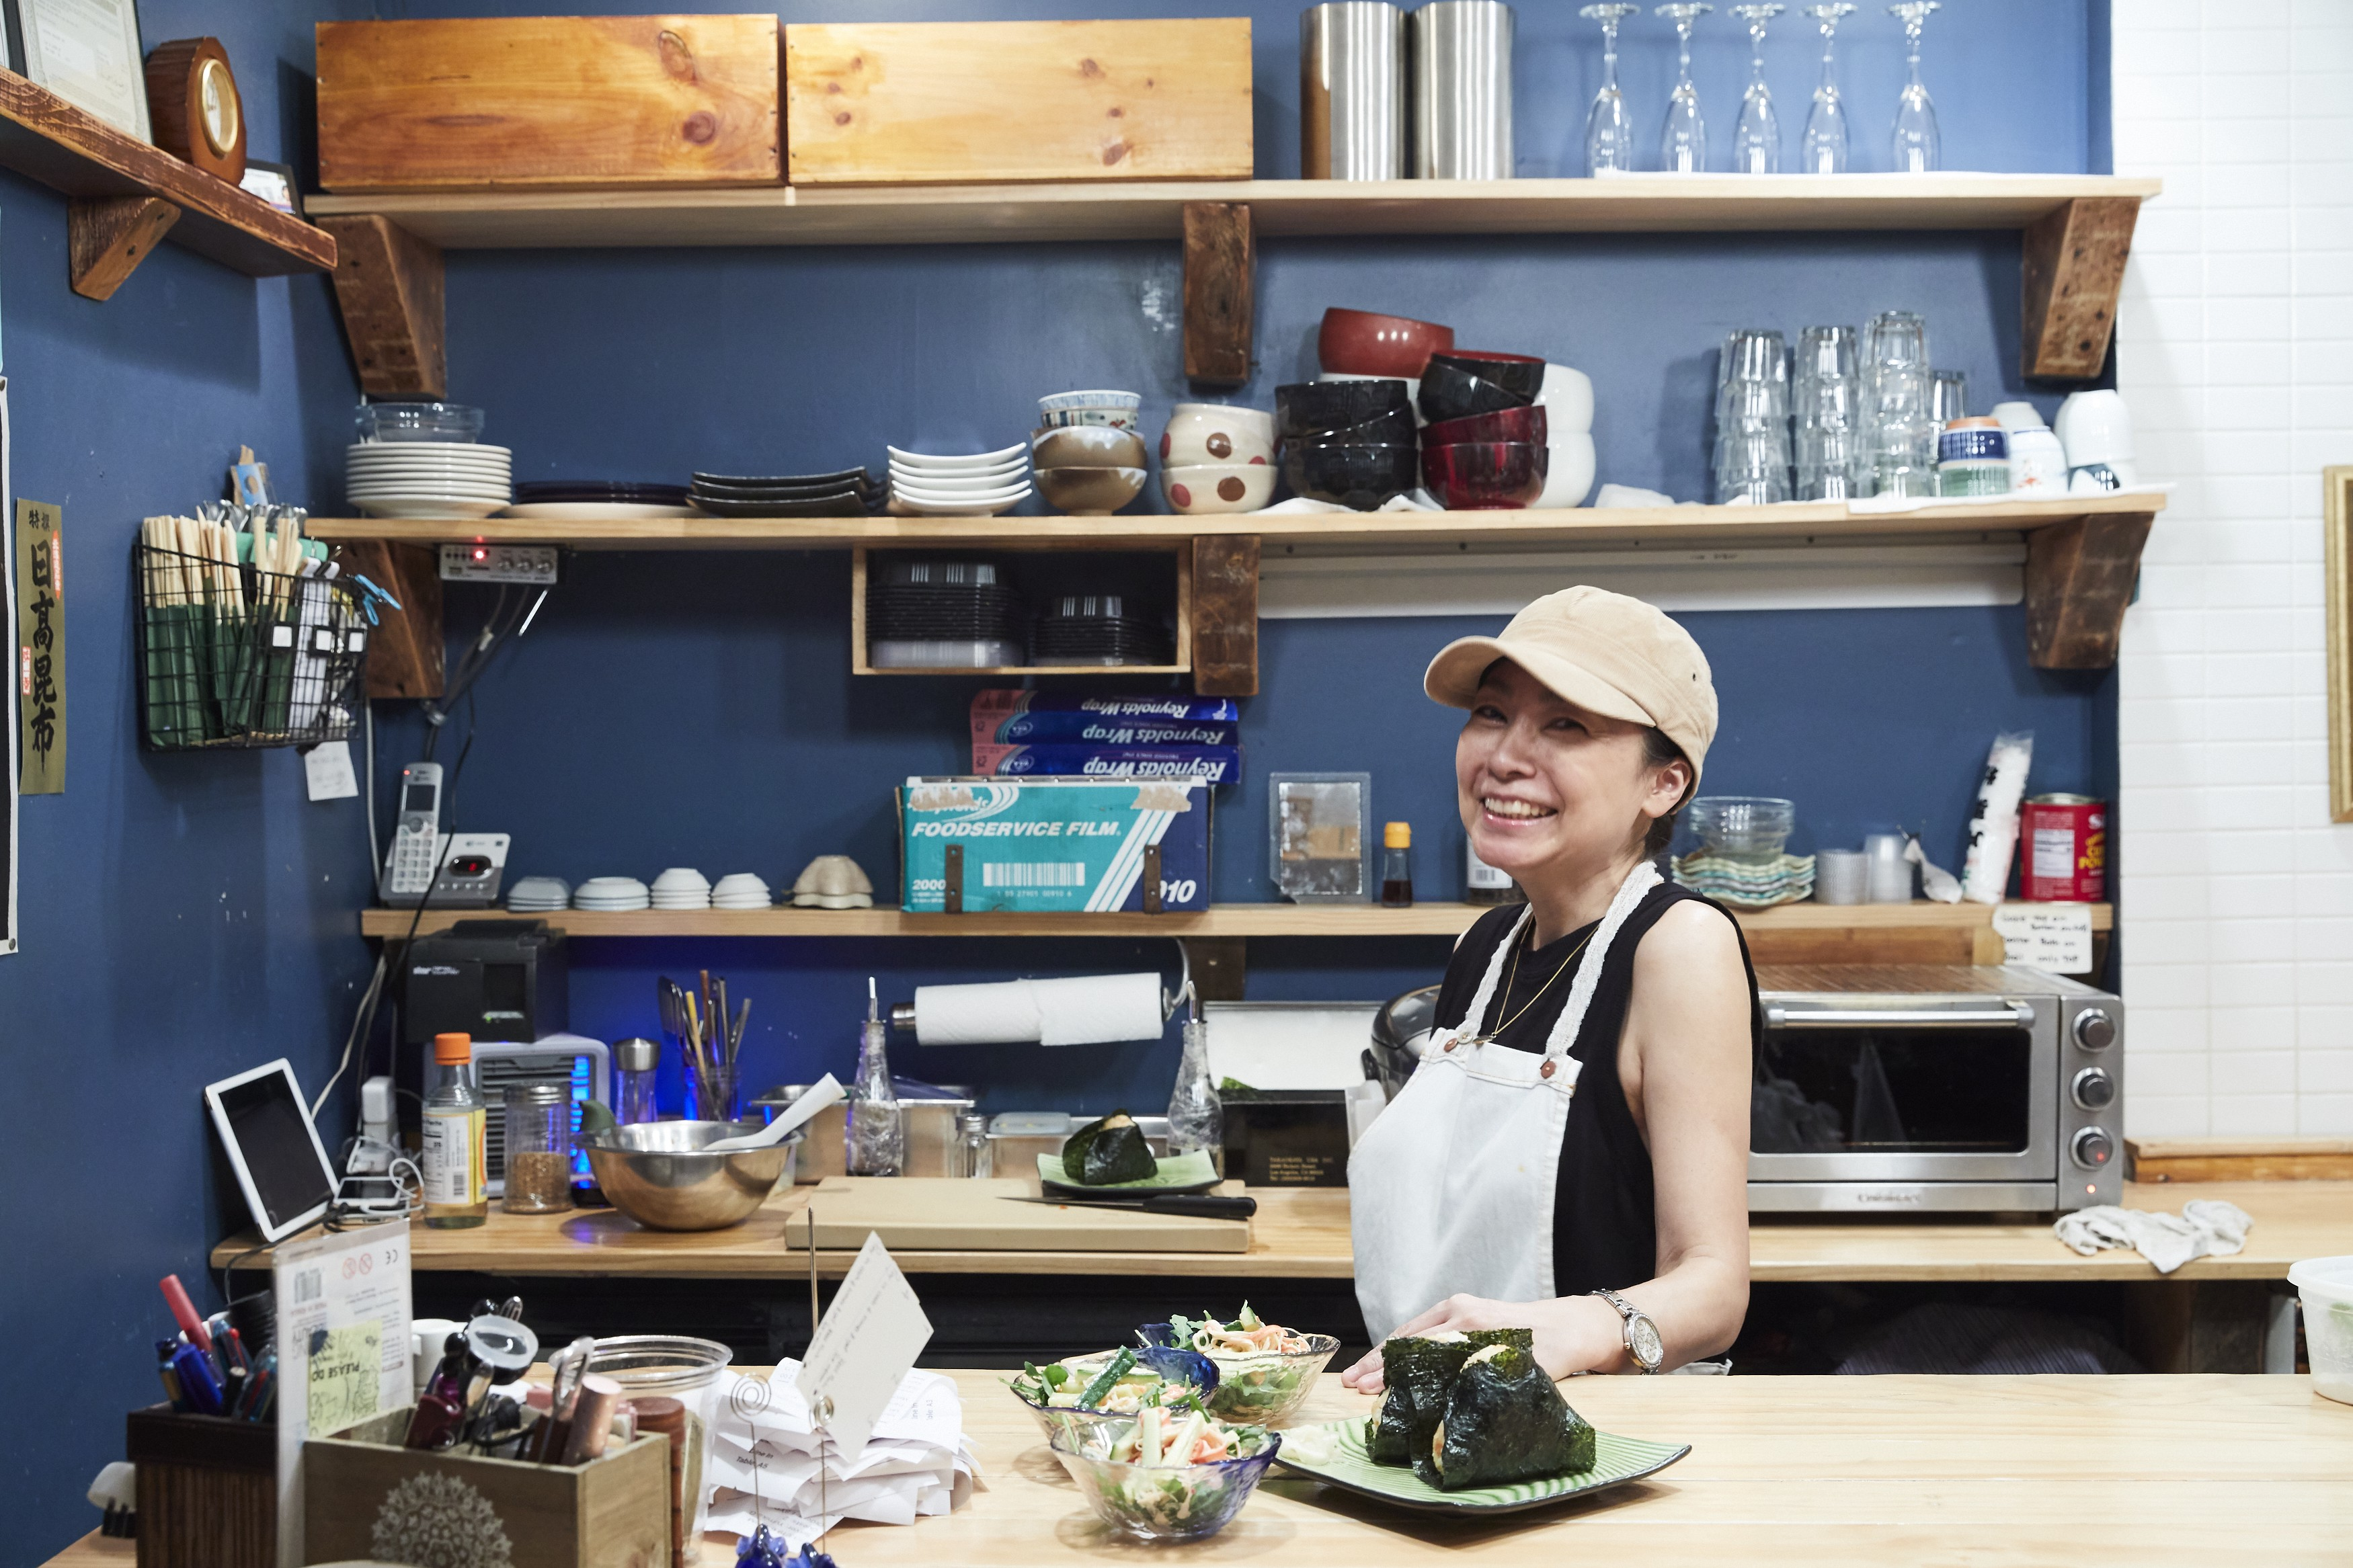 Yumika Parsley Opened a Harlem Restaurant 'for Survival'